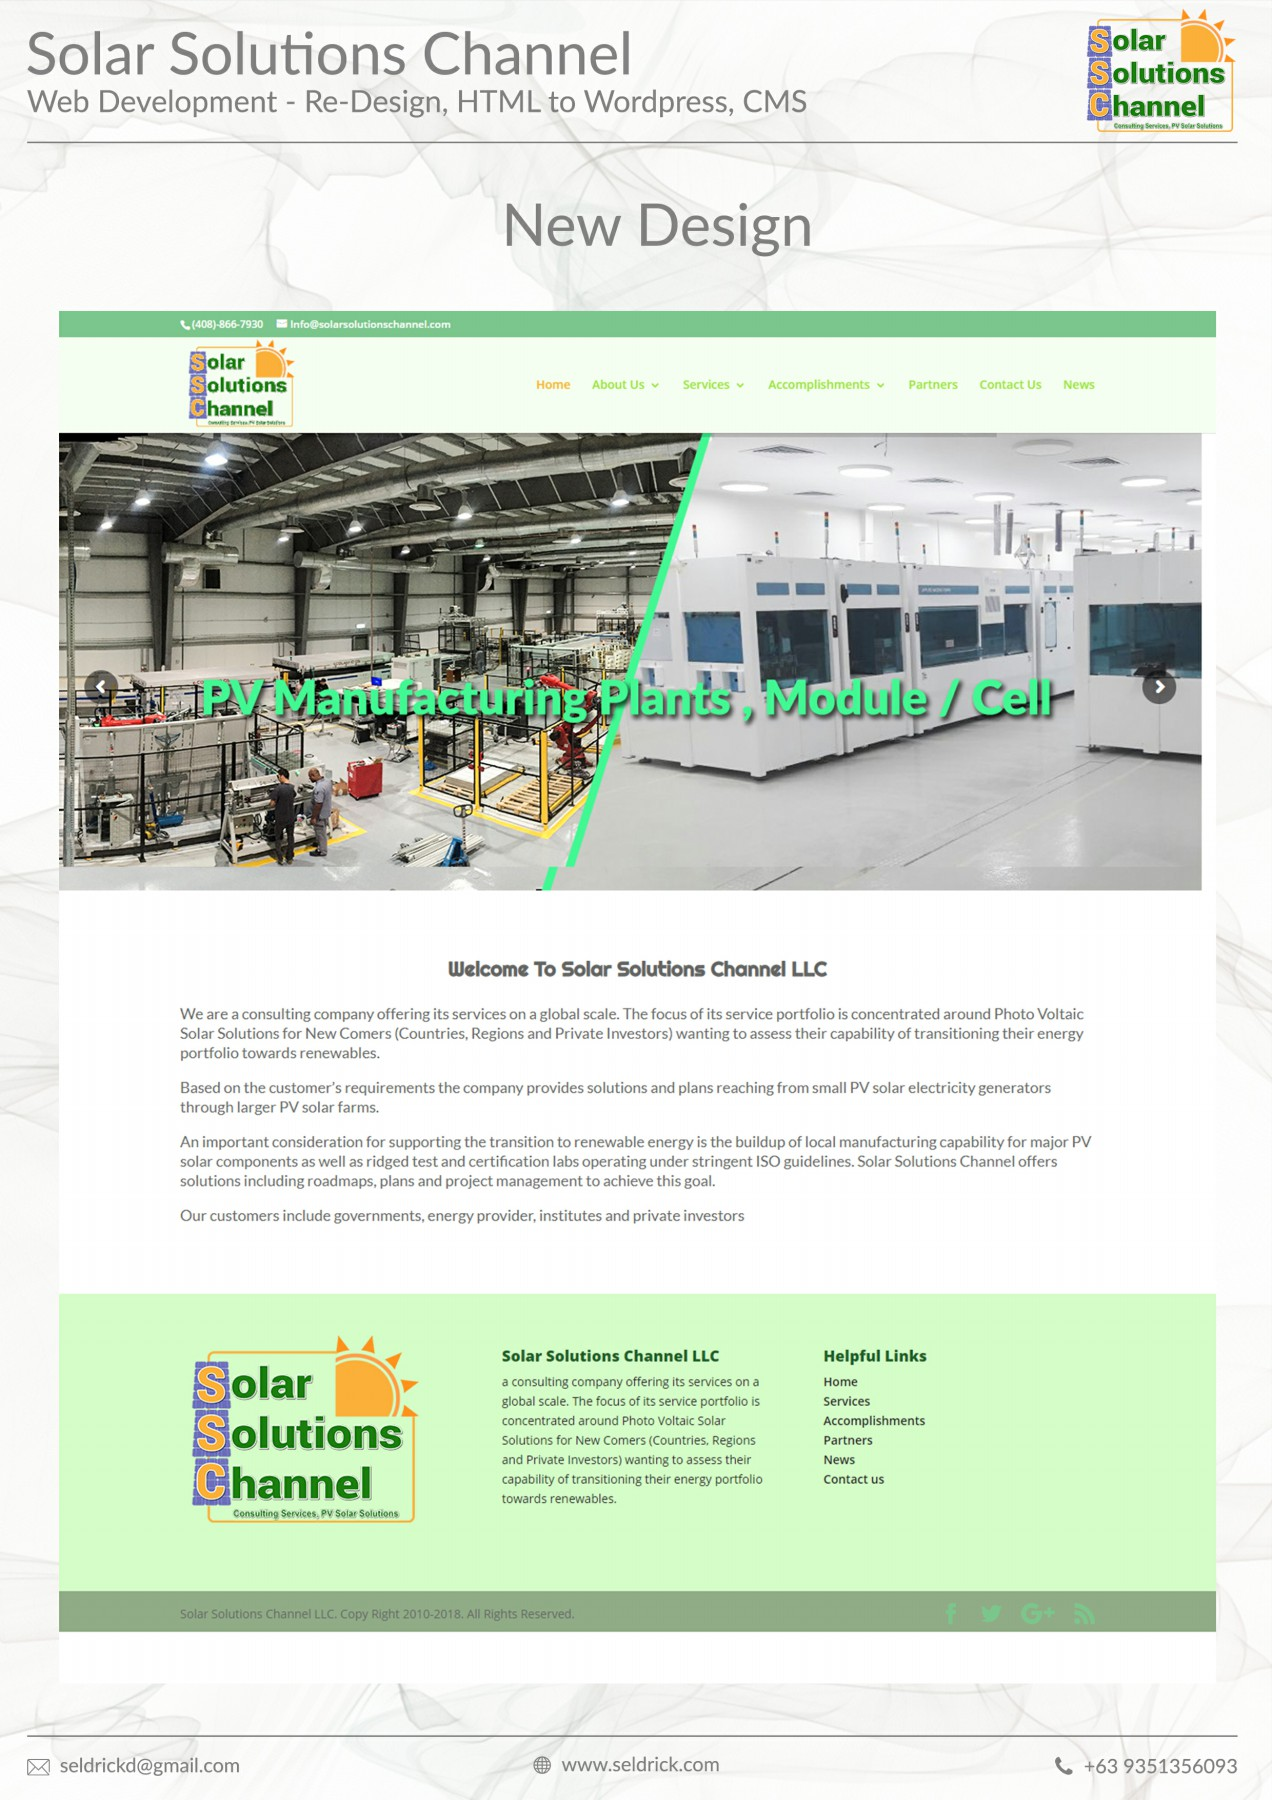 Small-ssc-website-page-2